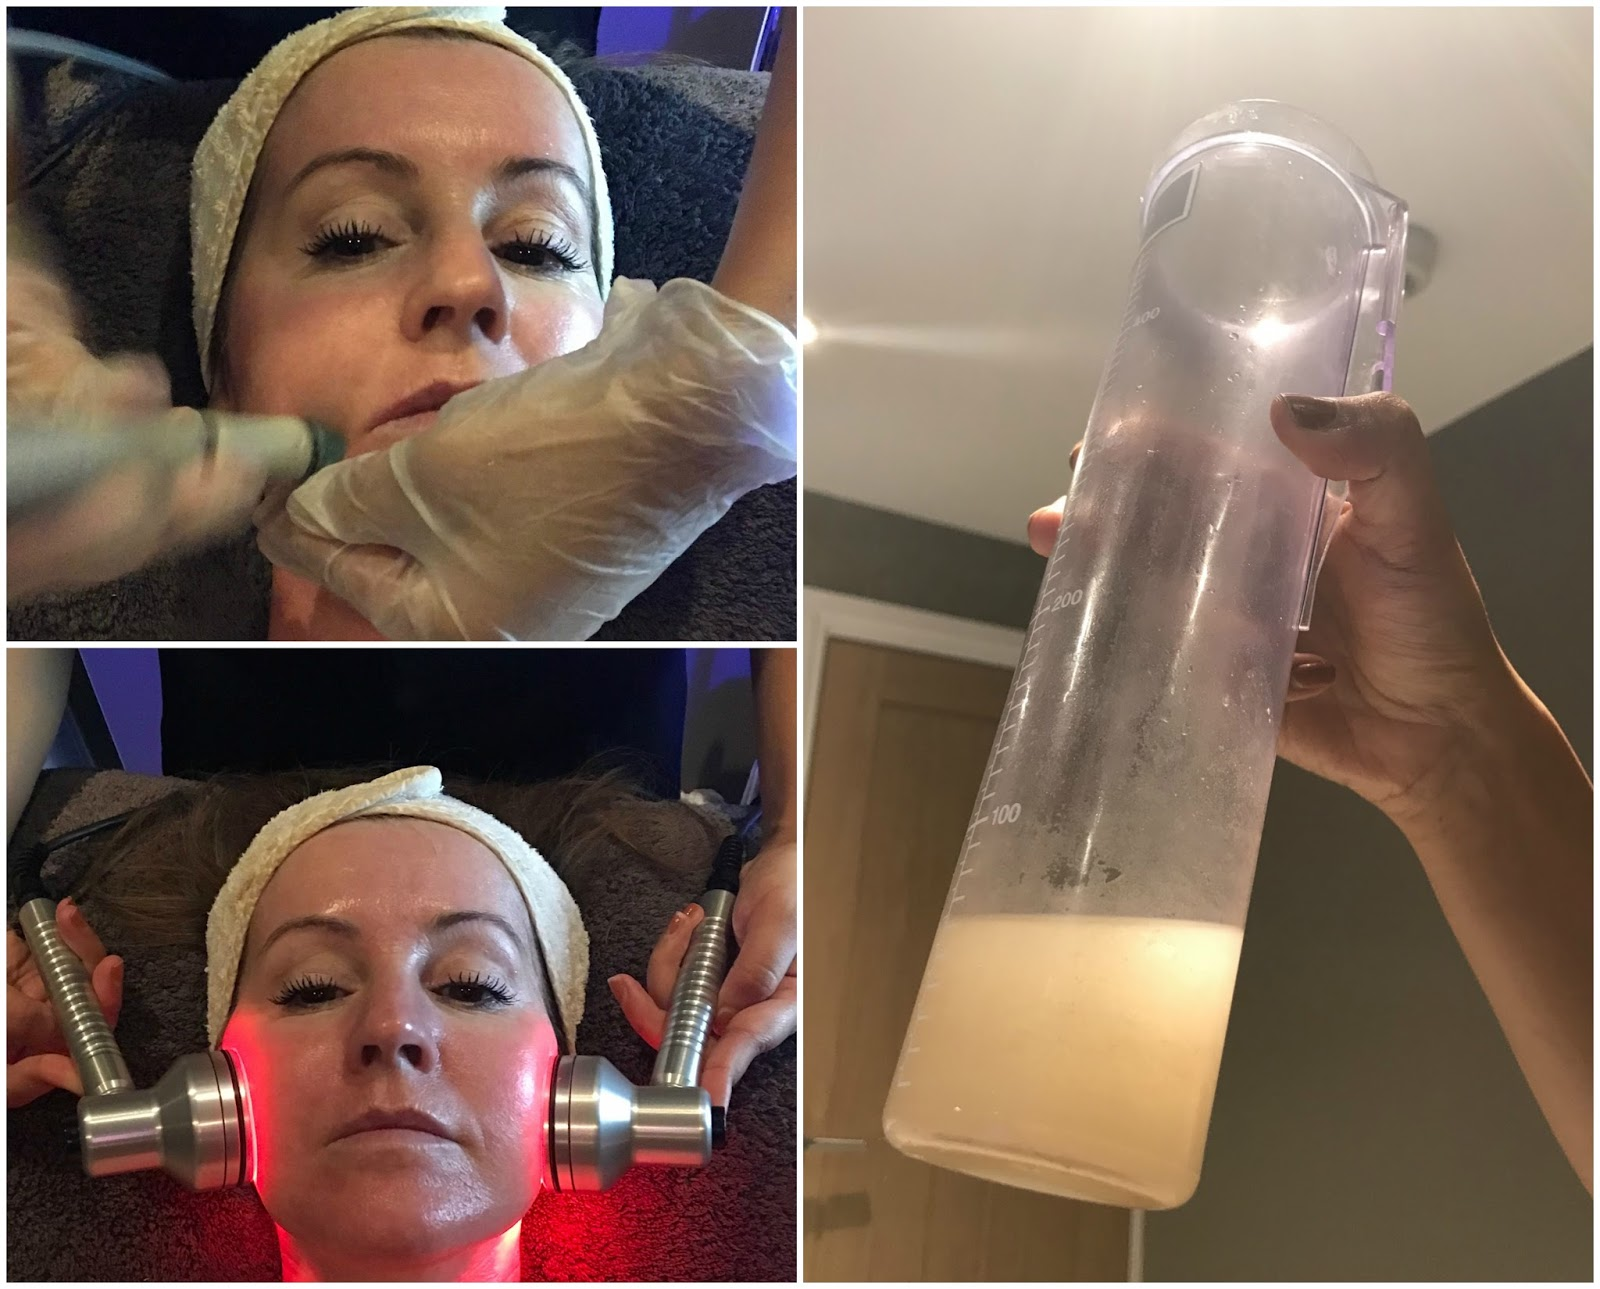 Hydrafacial extraction \ LED lights \ Hampton Clinic \ experiencing the Hydrafacial at Hampton clinic \ Priceless Life of Mine \ over 40 lifestyle blog